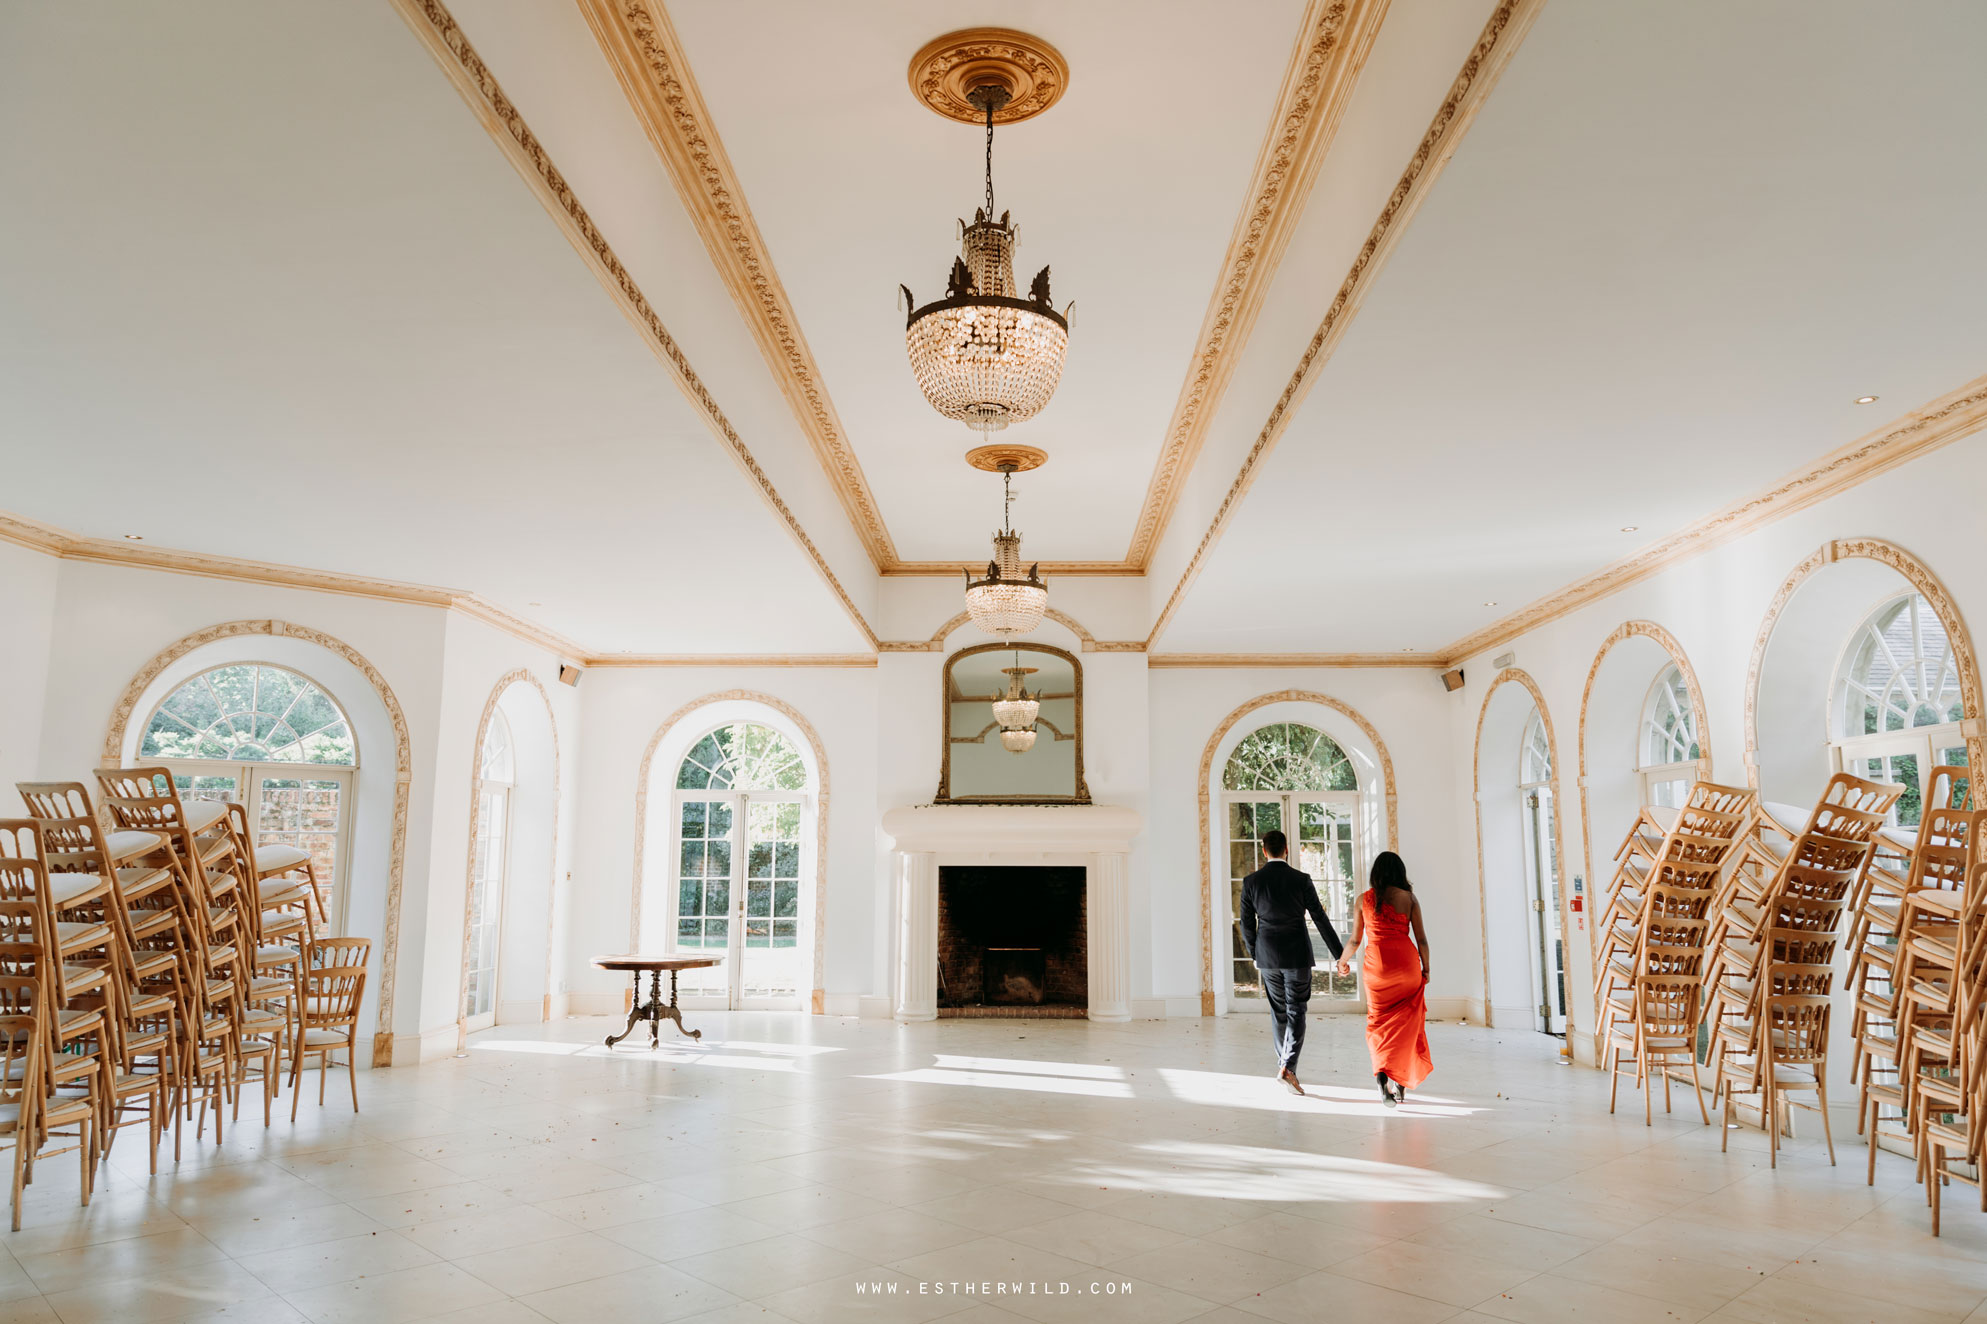 Northbrook_Park_Farnham_Surrey_London_Wedding_Hindu_Fusion_Esther_Wild_Photographer_IMG_5634.jpg